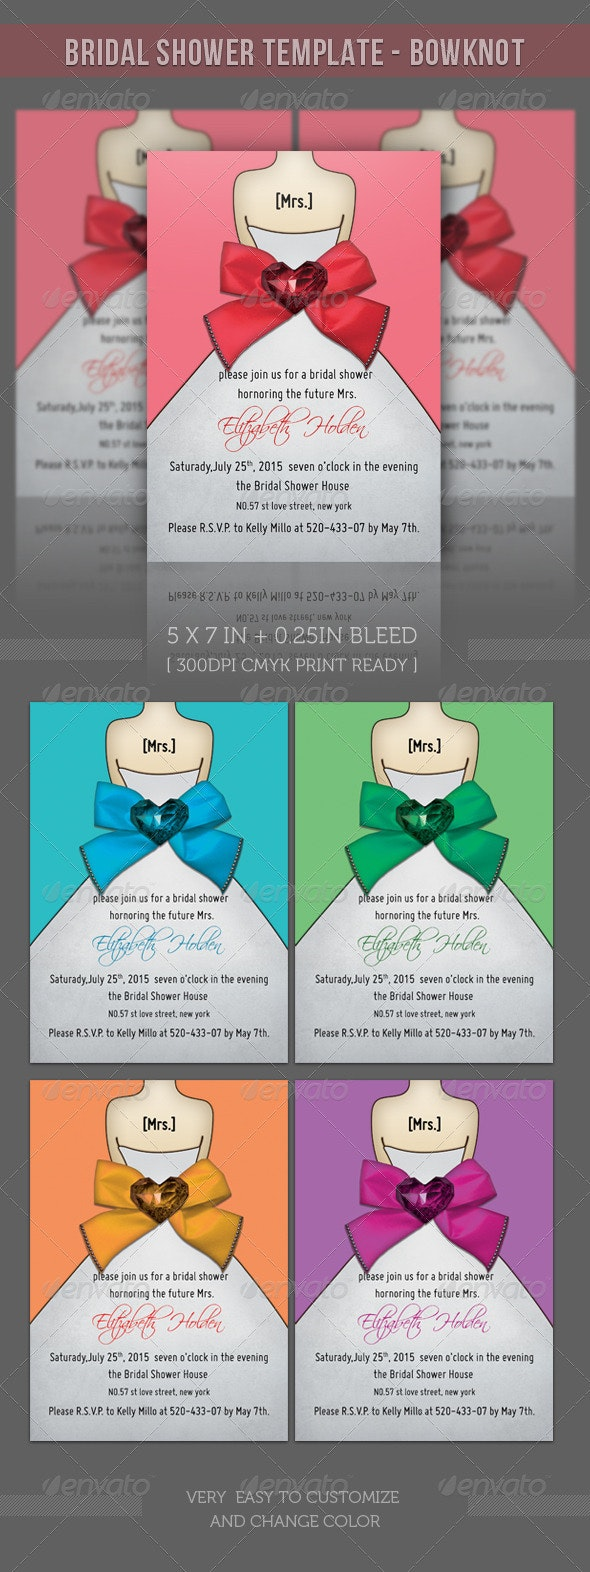 Bridal Shower Template - Bowknot - Weddings Cards & Invites